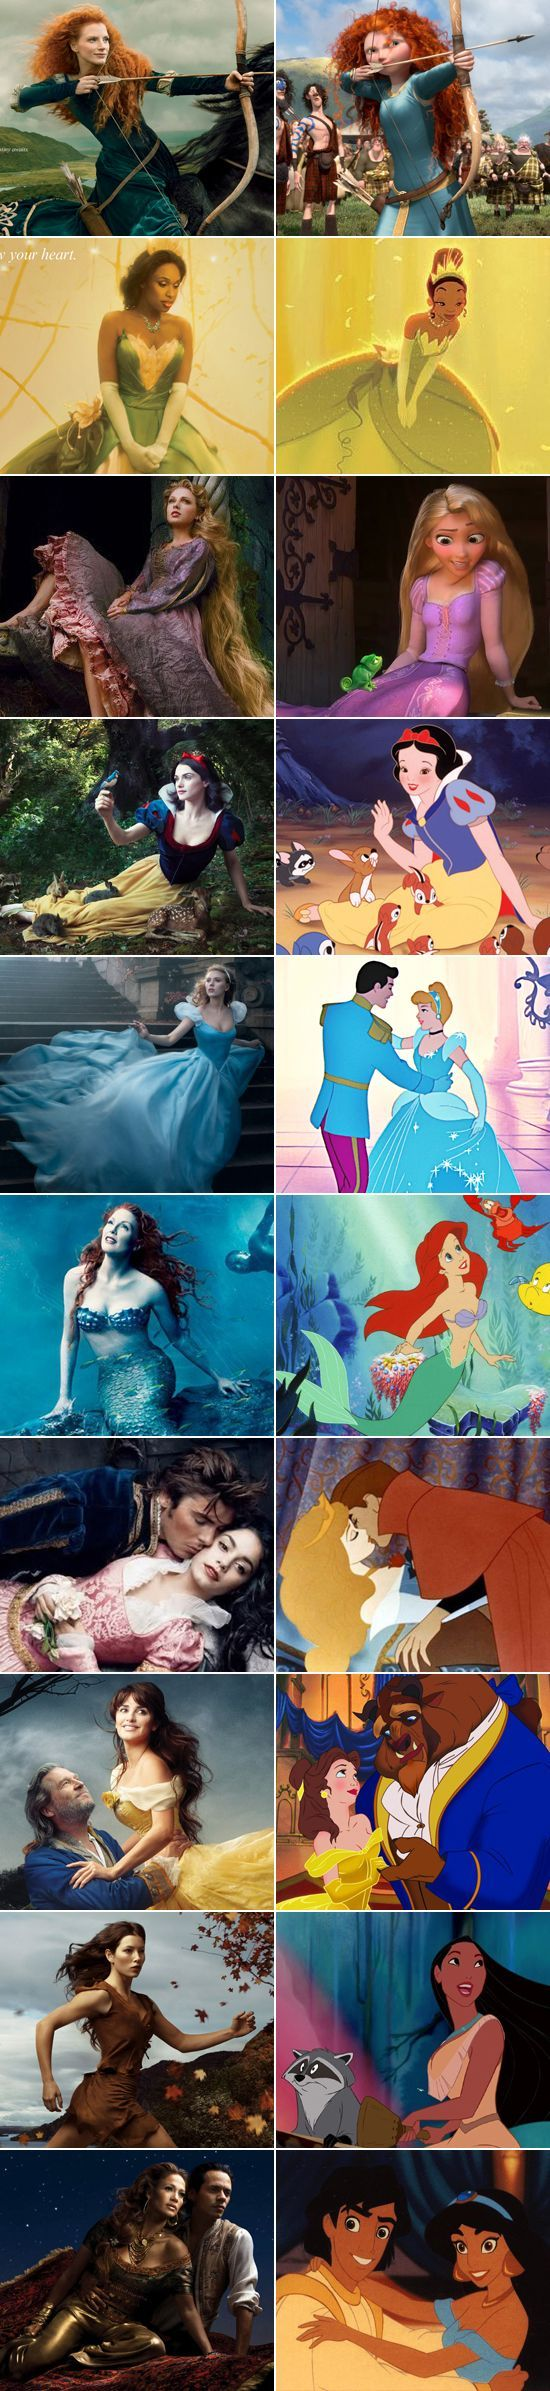 i saw a video at disney.com on how they make these pics. the last pic looks like jennifer lopez